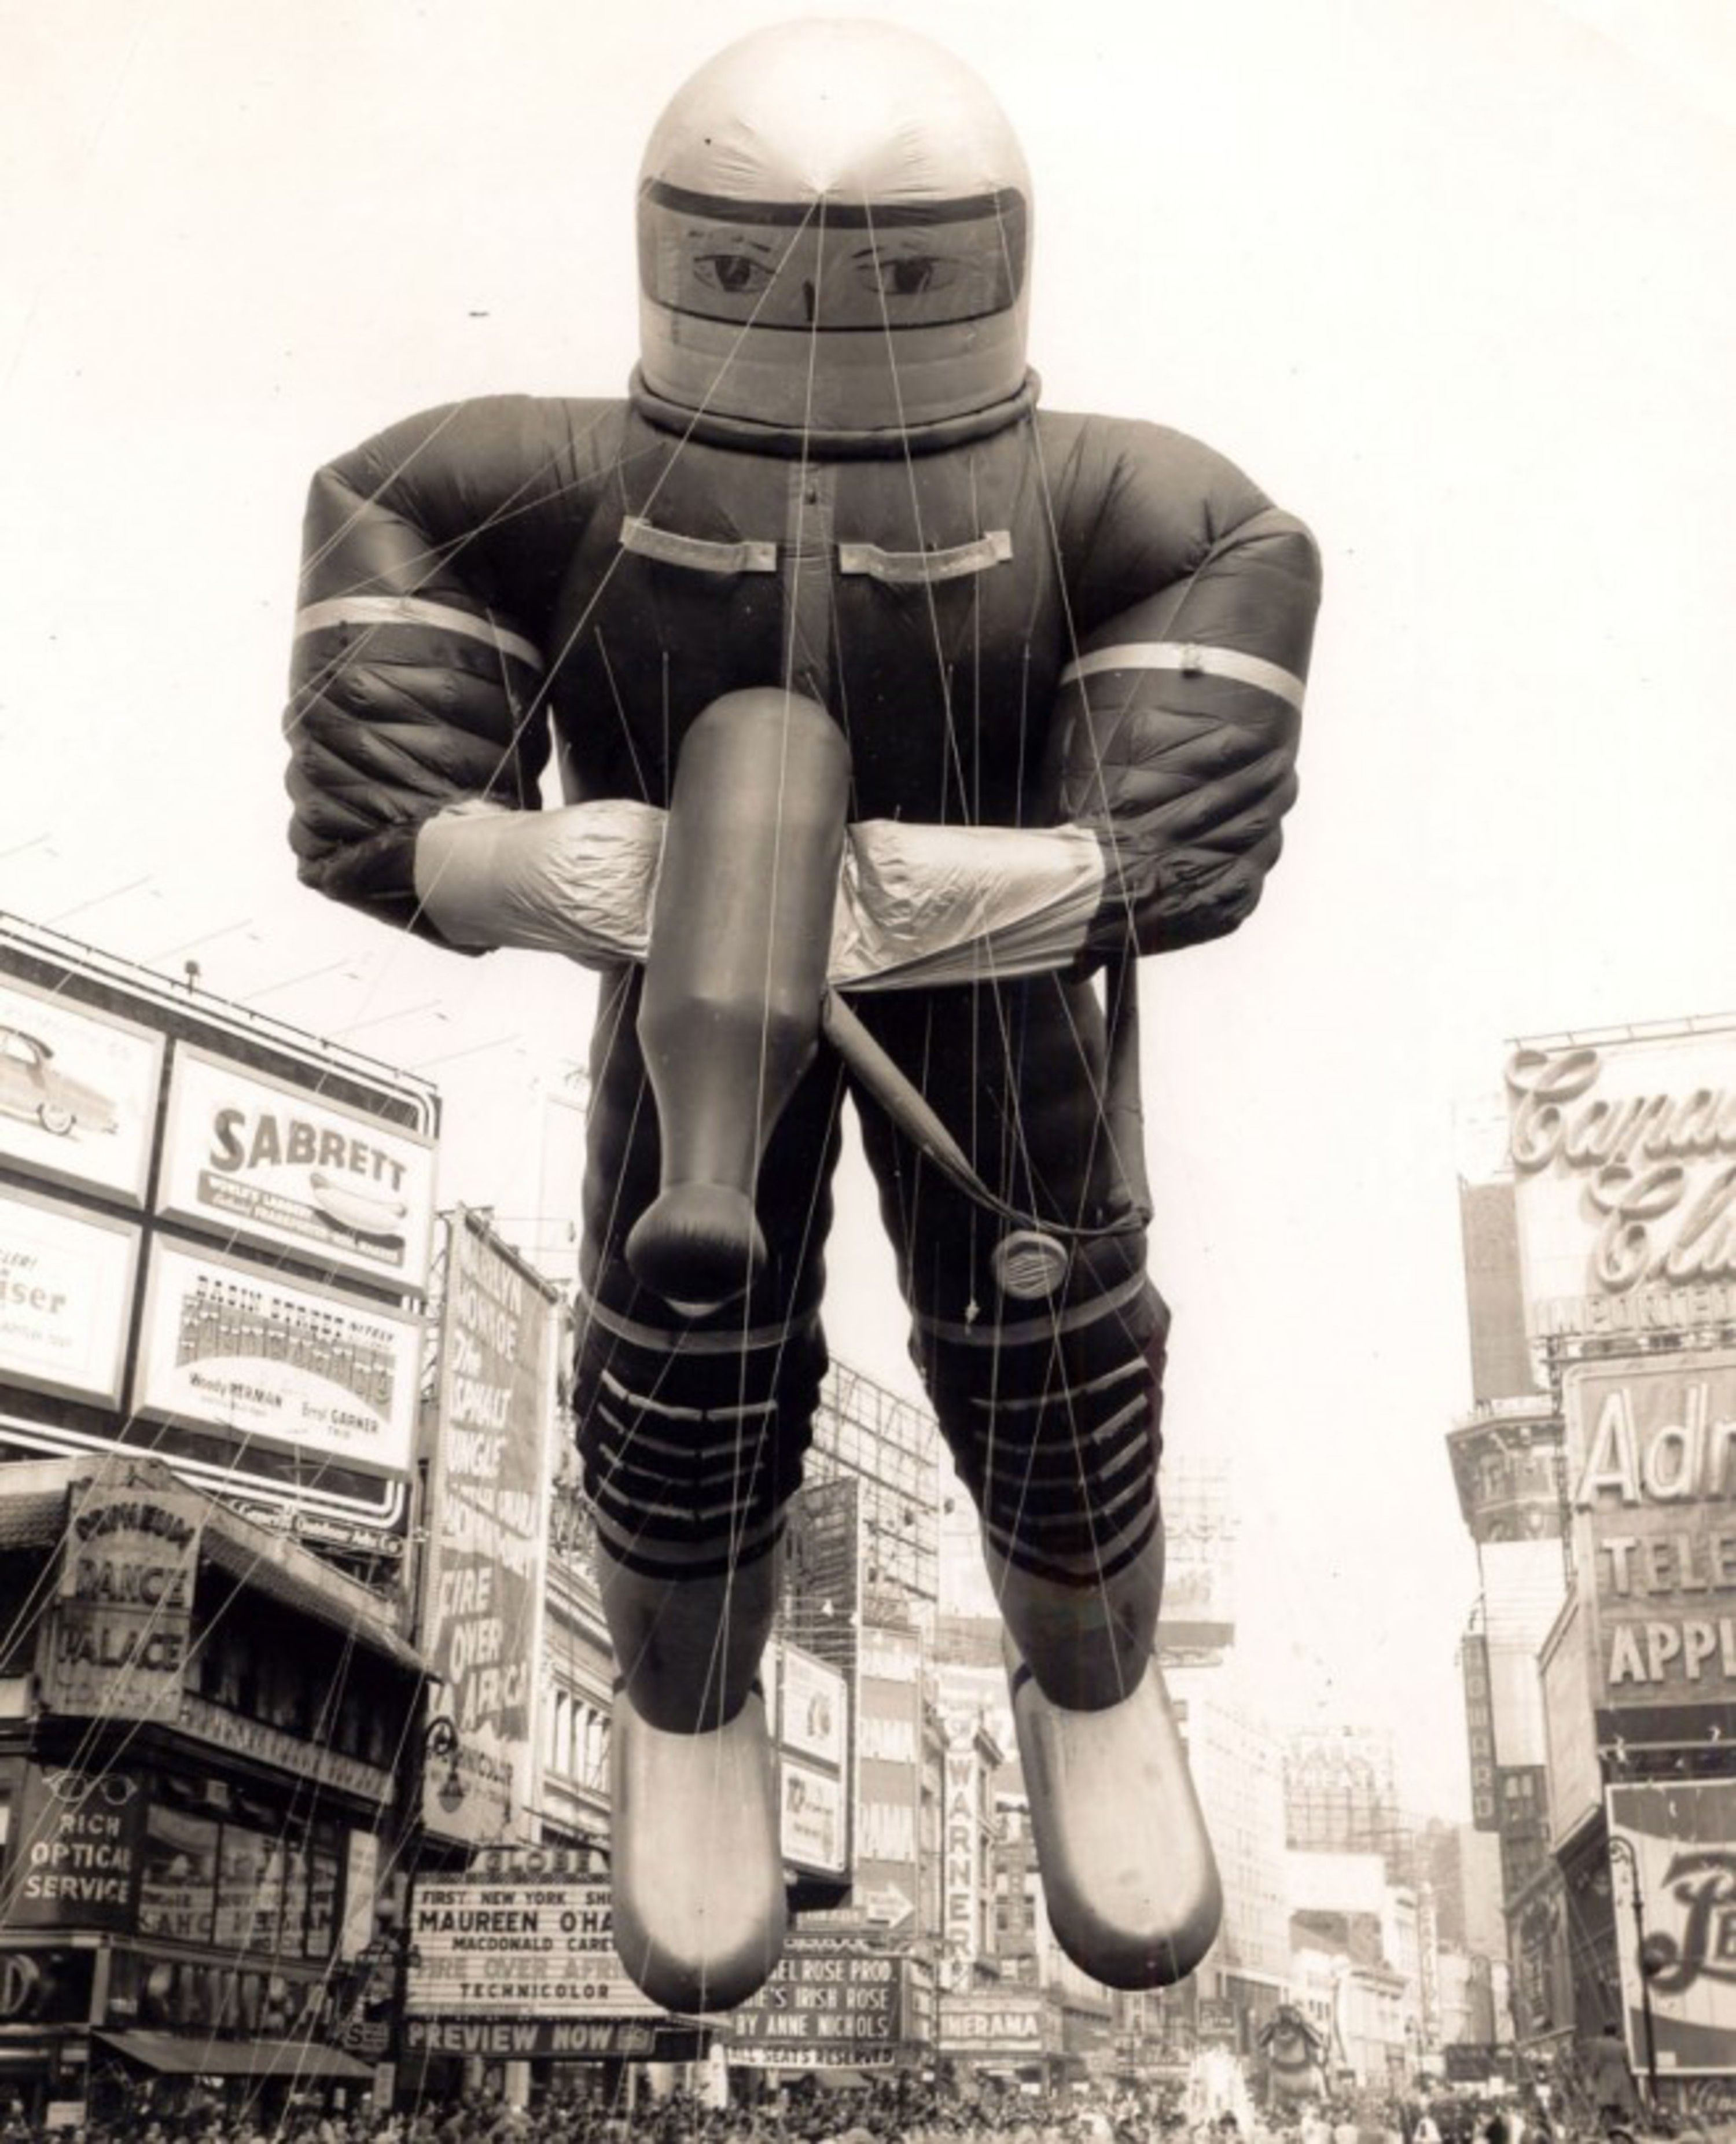 Vintage Photographs Of The Macys Thanksgiving Parade Spaceman